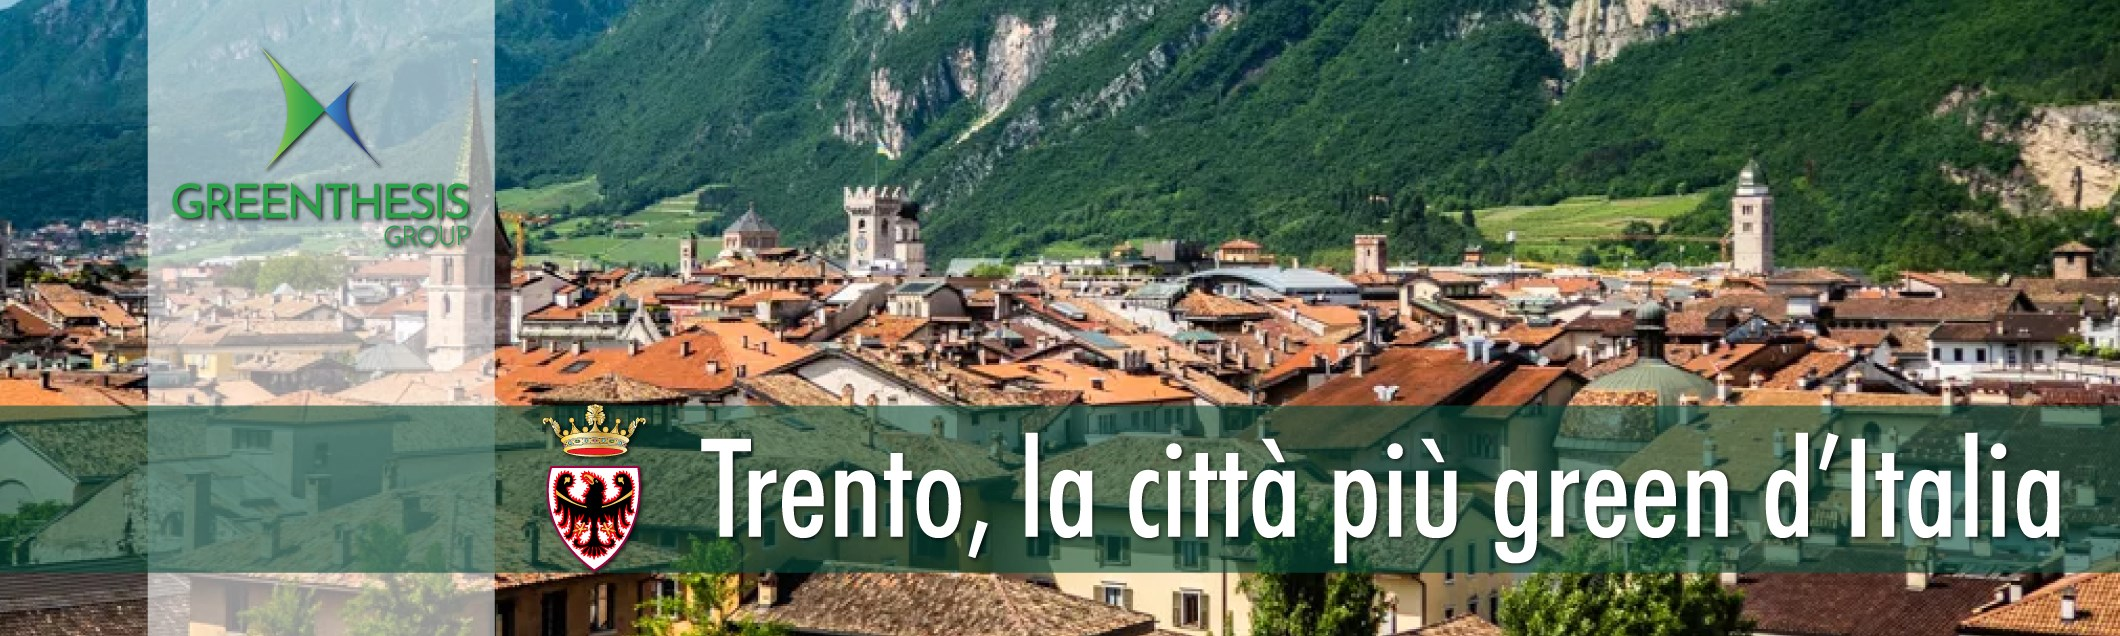 Greenthesis Group - Trento �� la citt�� pi�� green d���Italia - Classifiche e considerazioni